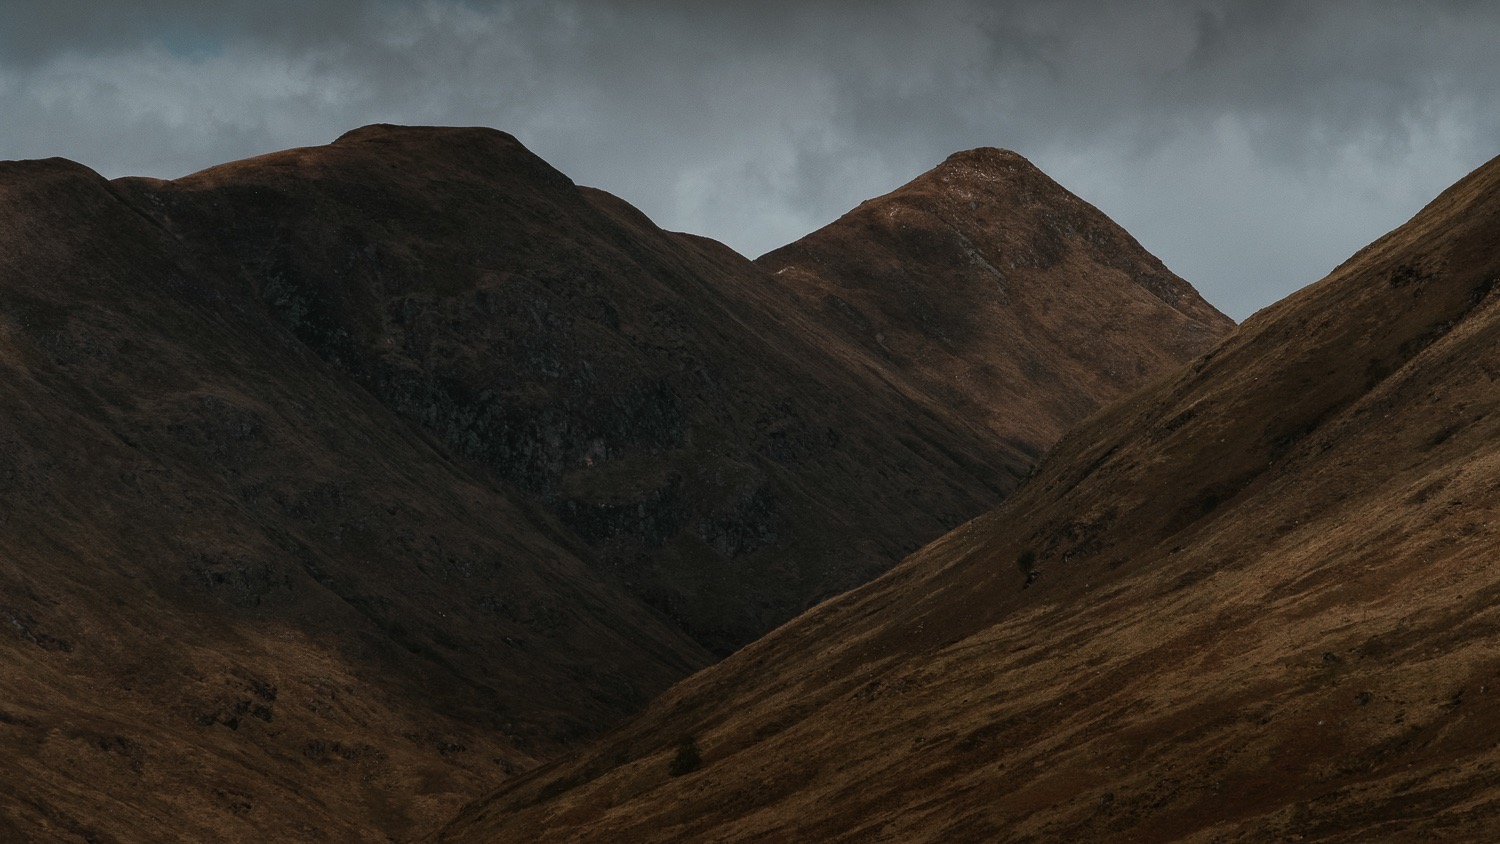 0039-scotland-tamron-le monde de la photo-paysage-20190509122813-compress.jpg